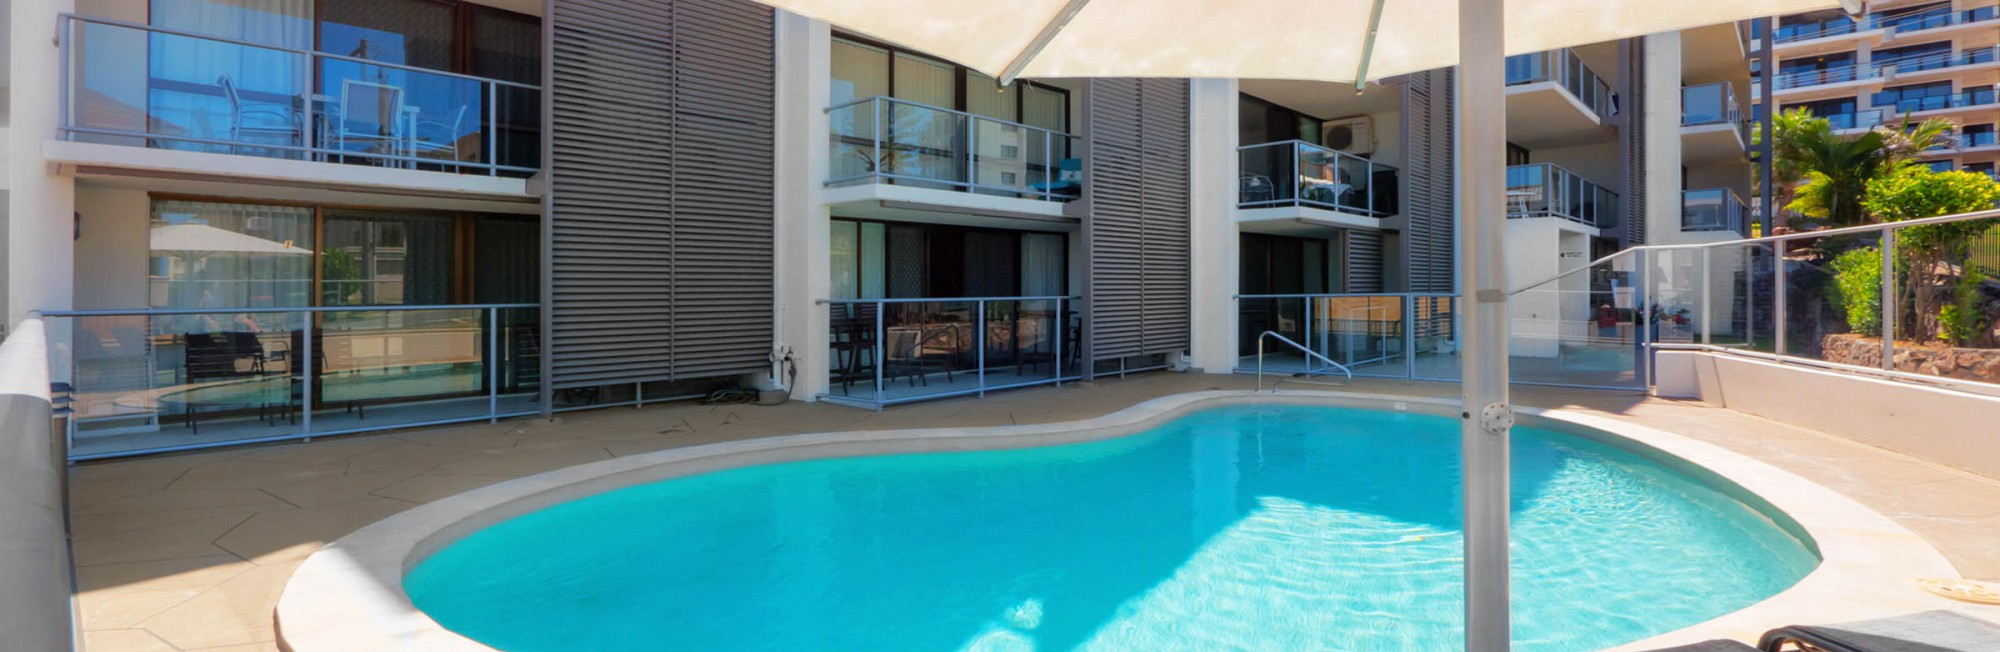 Merrima Court Holiay Apartments Kings Beach Caloundra